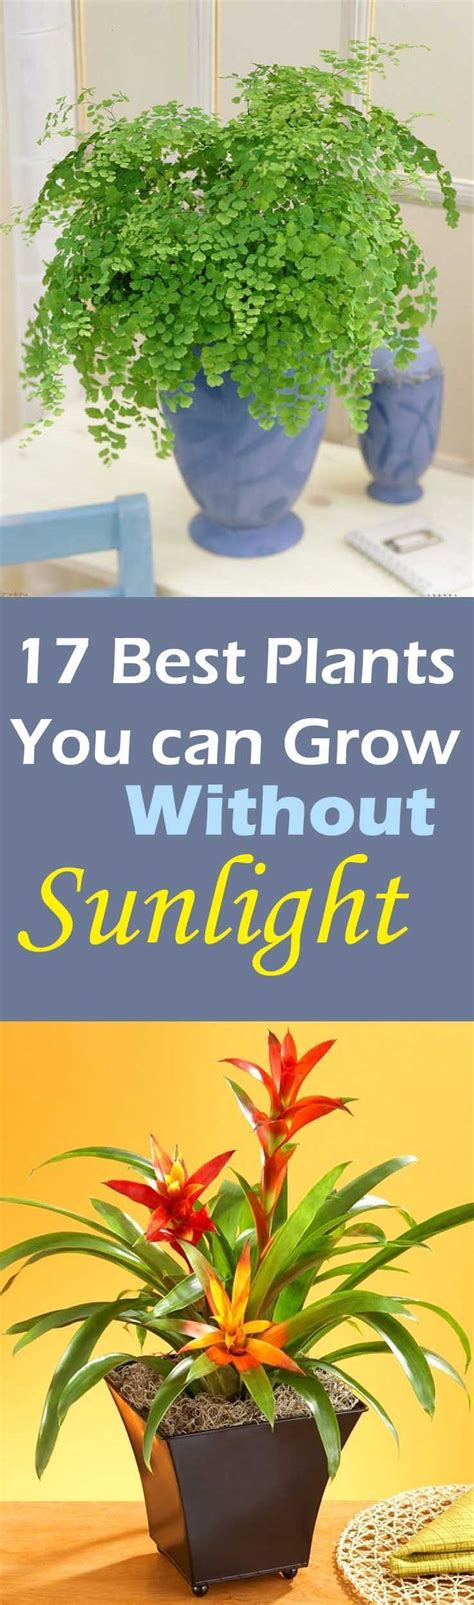 plants that don t need sunlight to grow 25 best ideas about low light houseplants on pinterest